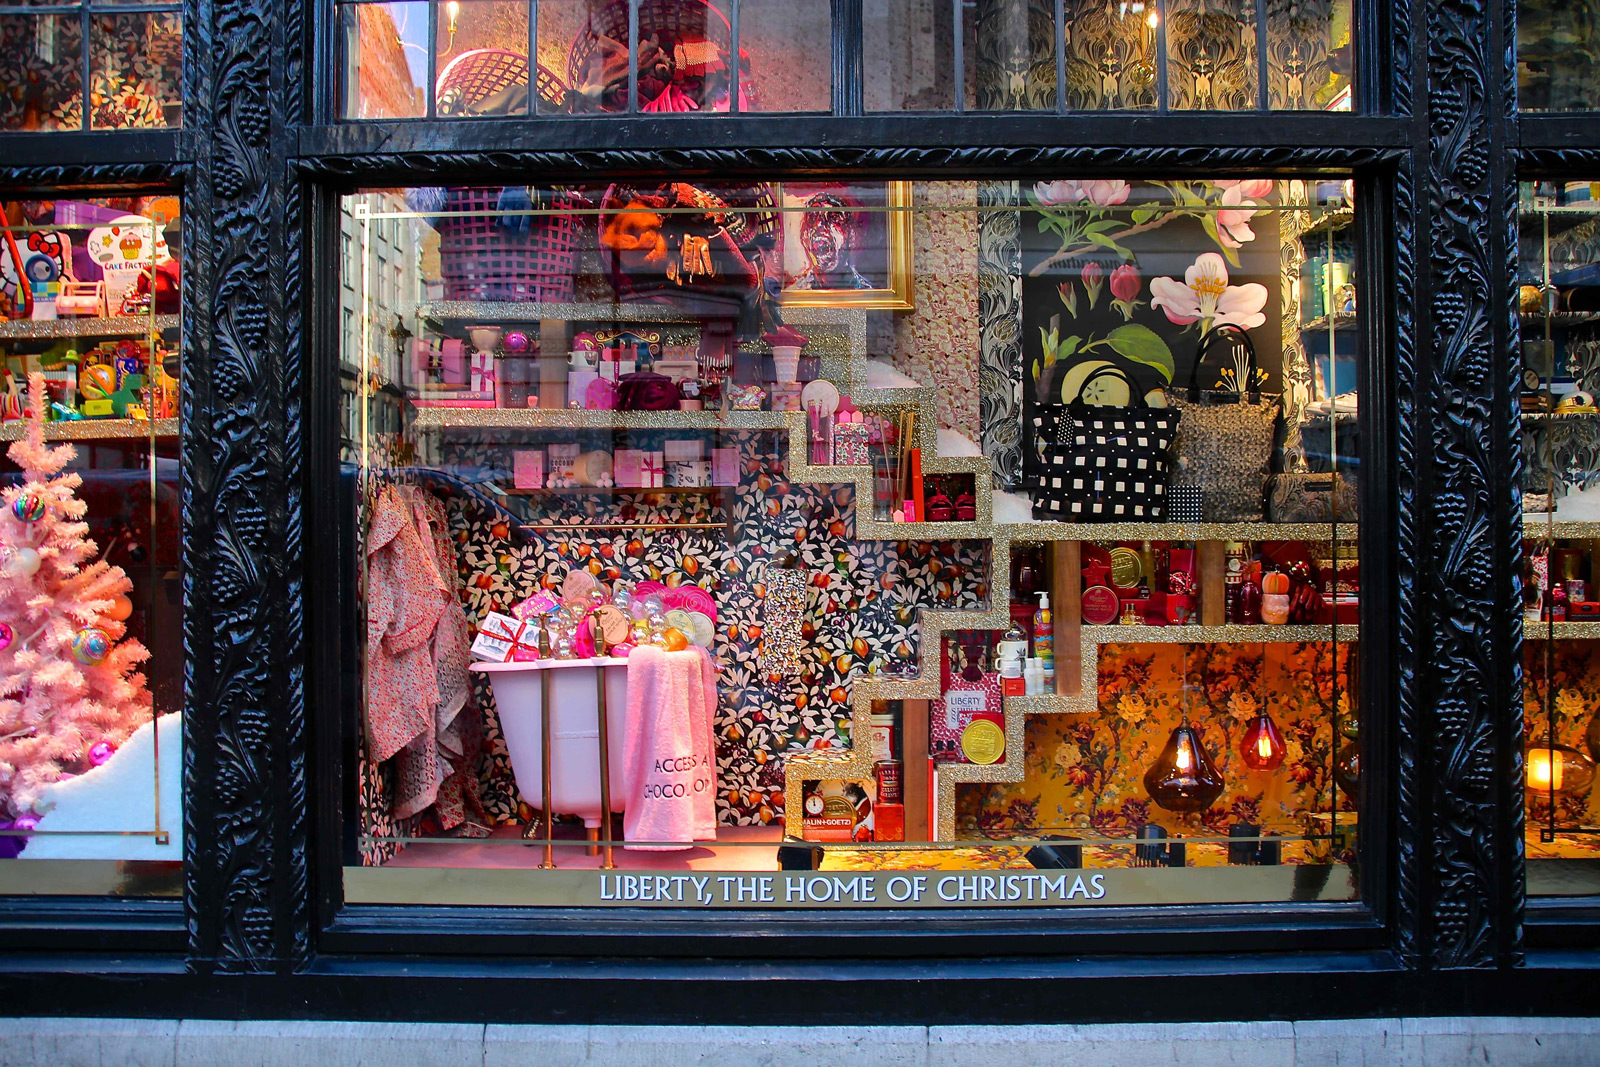 At liberty home of Christmas, the window display is full of patterns, prints most in pink but also in orange and black.